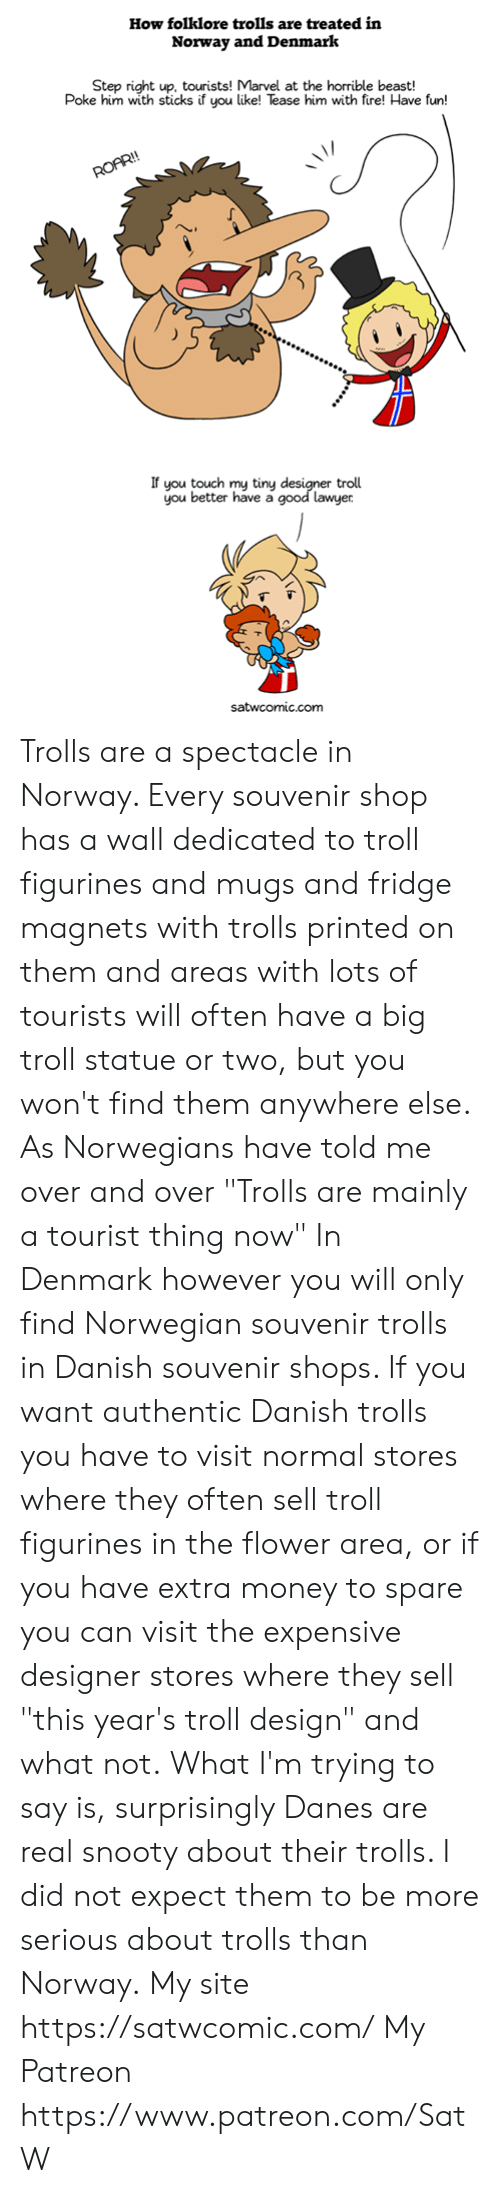 "mugs: How folklore trolls are treated in  Norway and Denmark  Step right up, tourists! Marvel at the horrible beast!  Poke him with sticks if you like! Tease him with fire! Have fun!  If you touch my tinyd  you better have a  troll  good lawyer  satwcomic.com Trolls are a spectacle in Norway. Every souvenir shop has a wall dedicated to troll figurines and mugs and fridge magnets with trolls printed on them and areas with lots of tourists will often have a big troll statue or two, but you won't find them anywhere else. As Norwegians have told me over and over ""Trolls are mainly a tourist thing now""  In Denmark however you will only find Norwegian souvenir trolls in Danish souvenir shops. If you want authentic Danish trolls you have to visit normal stores where they often sell troll figurines in the flower area, or if you have extra money to spare you can visit the expensive designer stores where they sell ""this year's troll design"" and what not.  What I'm trying to say is, surprisingly Danes are real snooty about their trolls. I did not expect them to be more serious about trolls than Norway.  My site https://satwcomic.com/ My Patreon https://www.patreon.com/SatW"